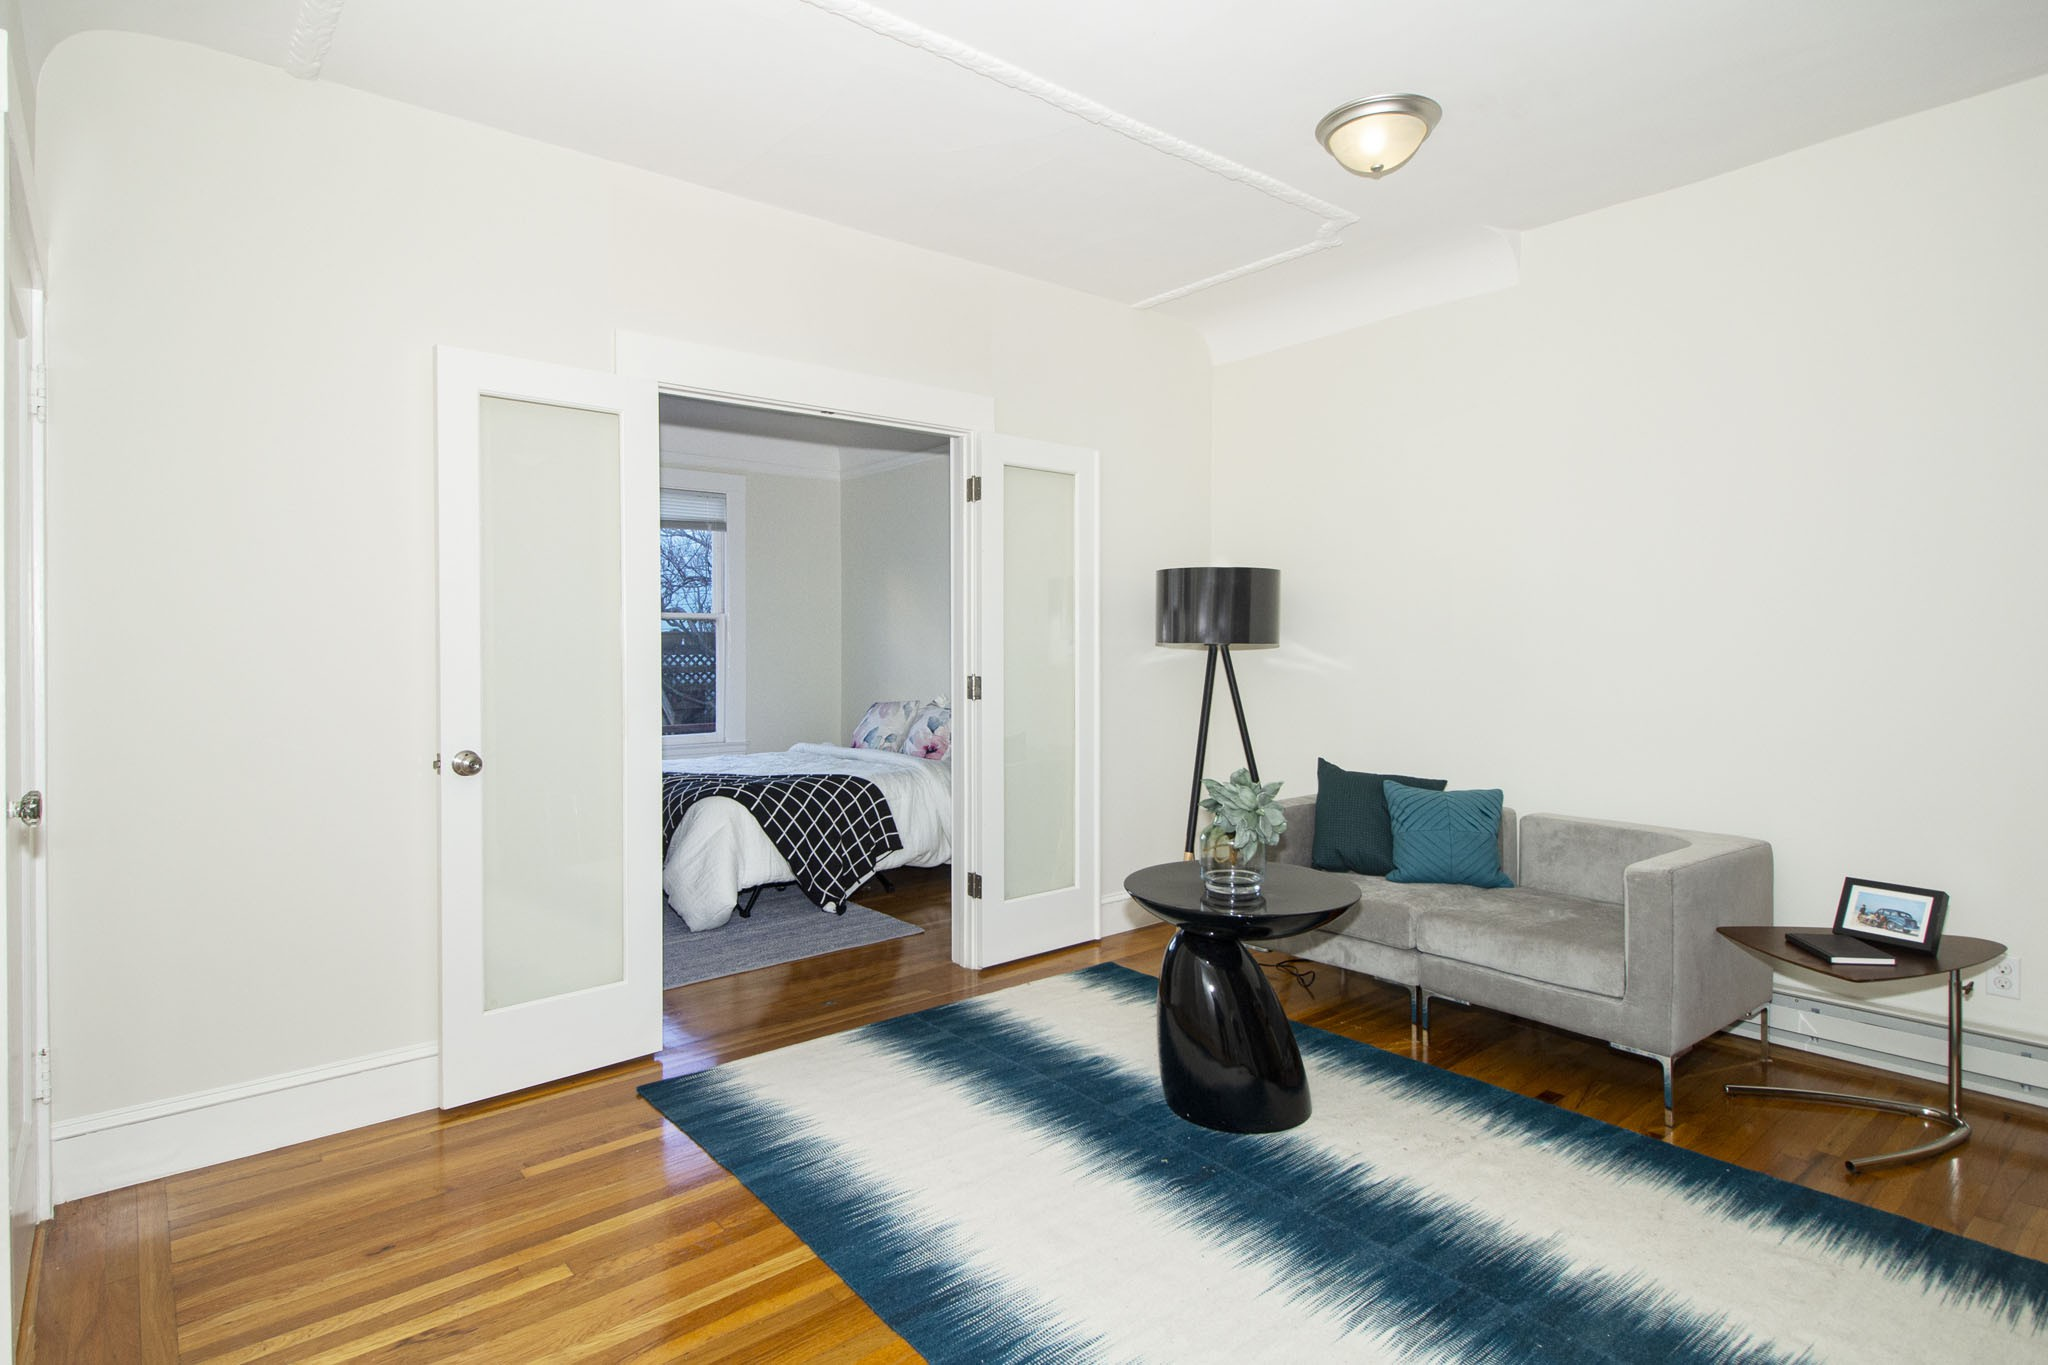 466 14TH STREET Apartments & Furnished Suites